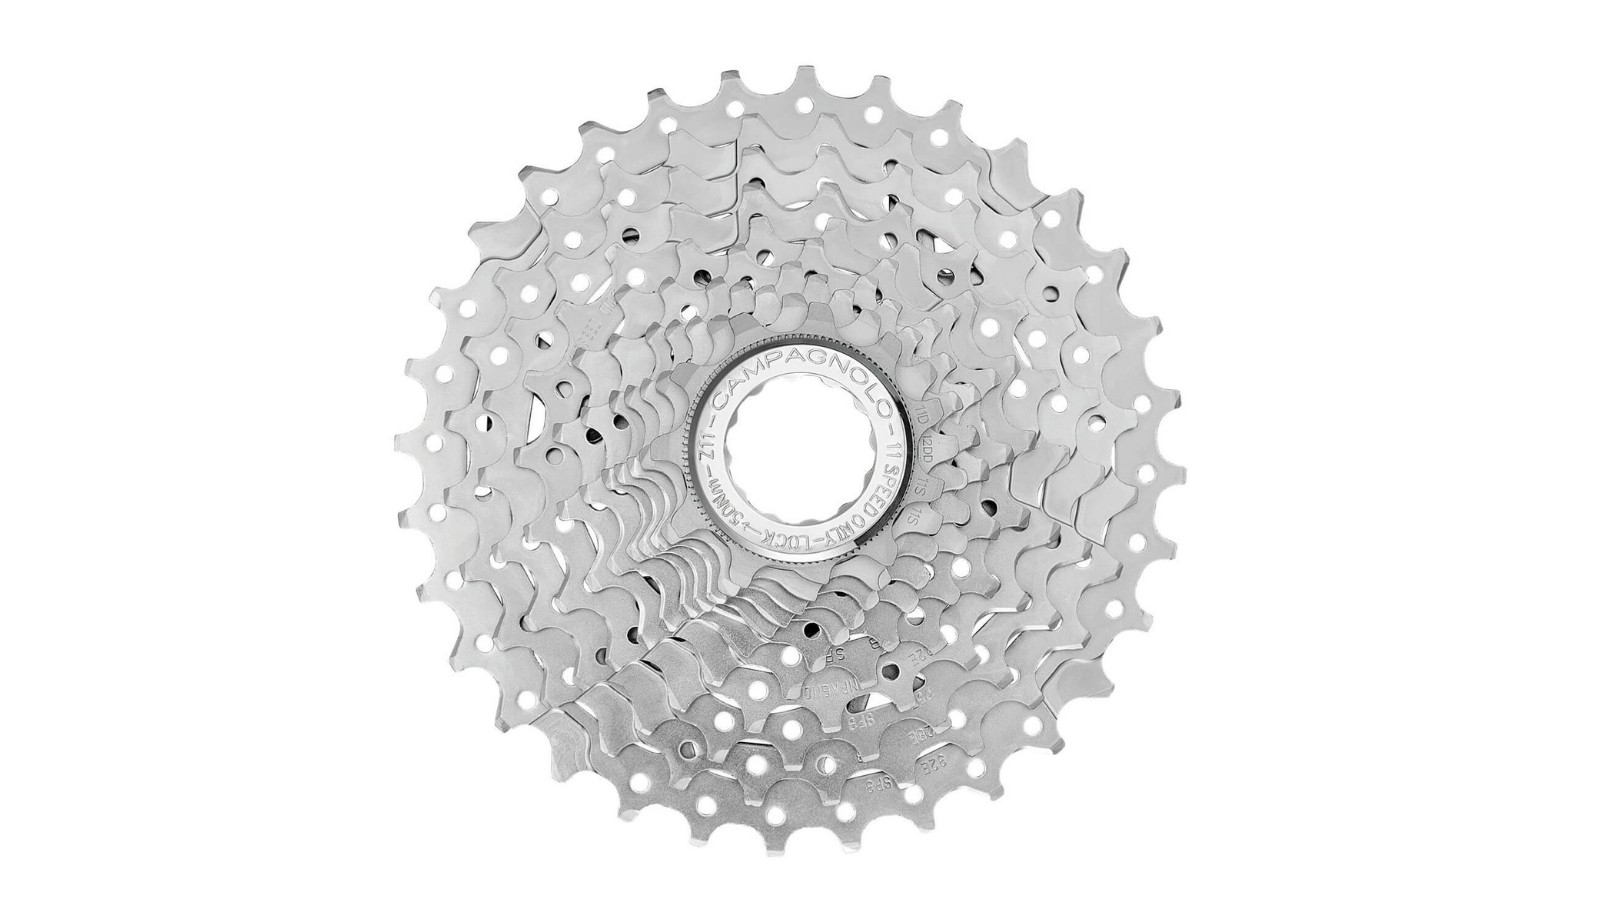 The 11spd cassette comes in size 11-32t